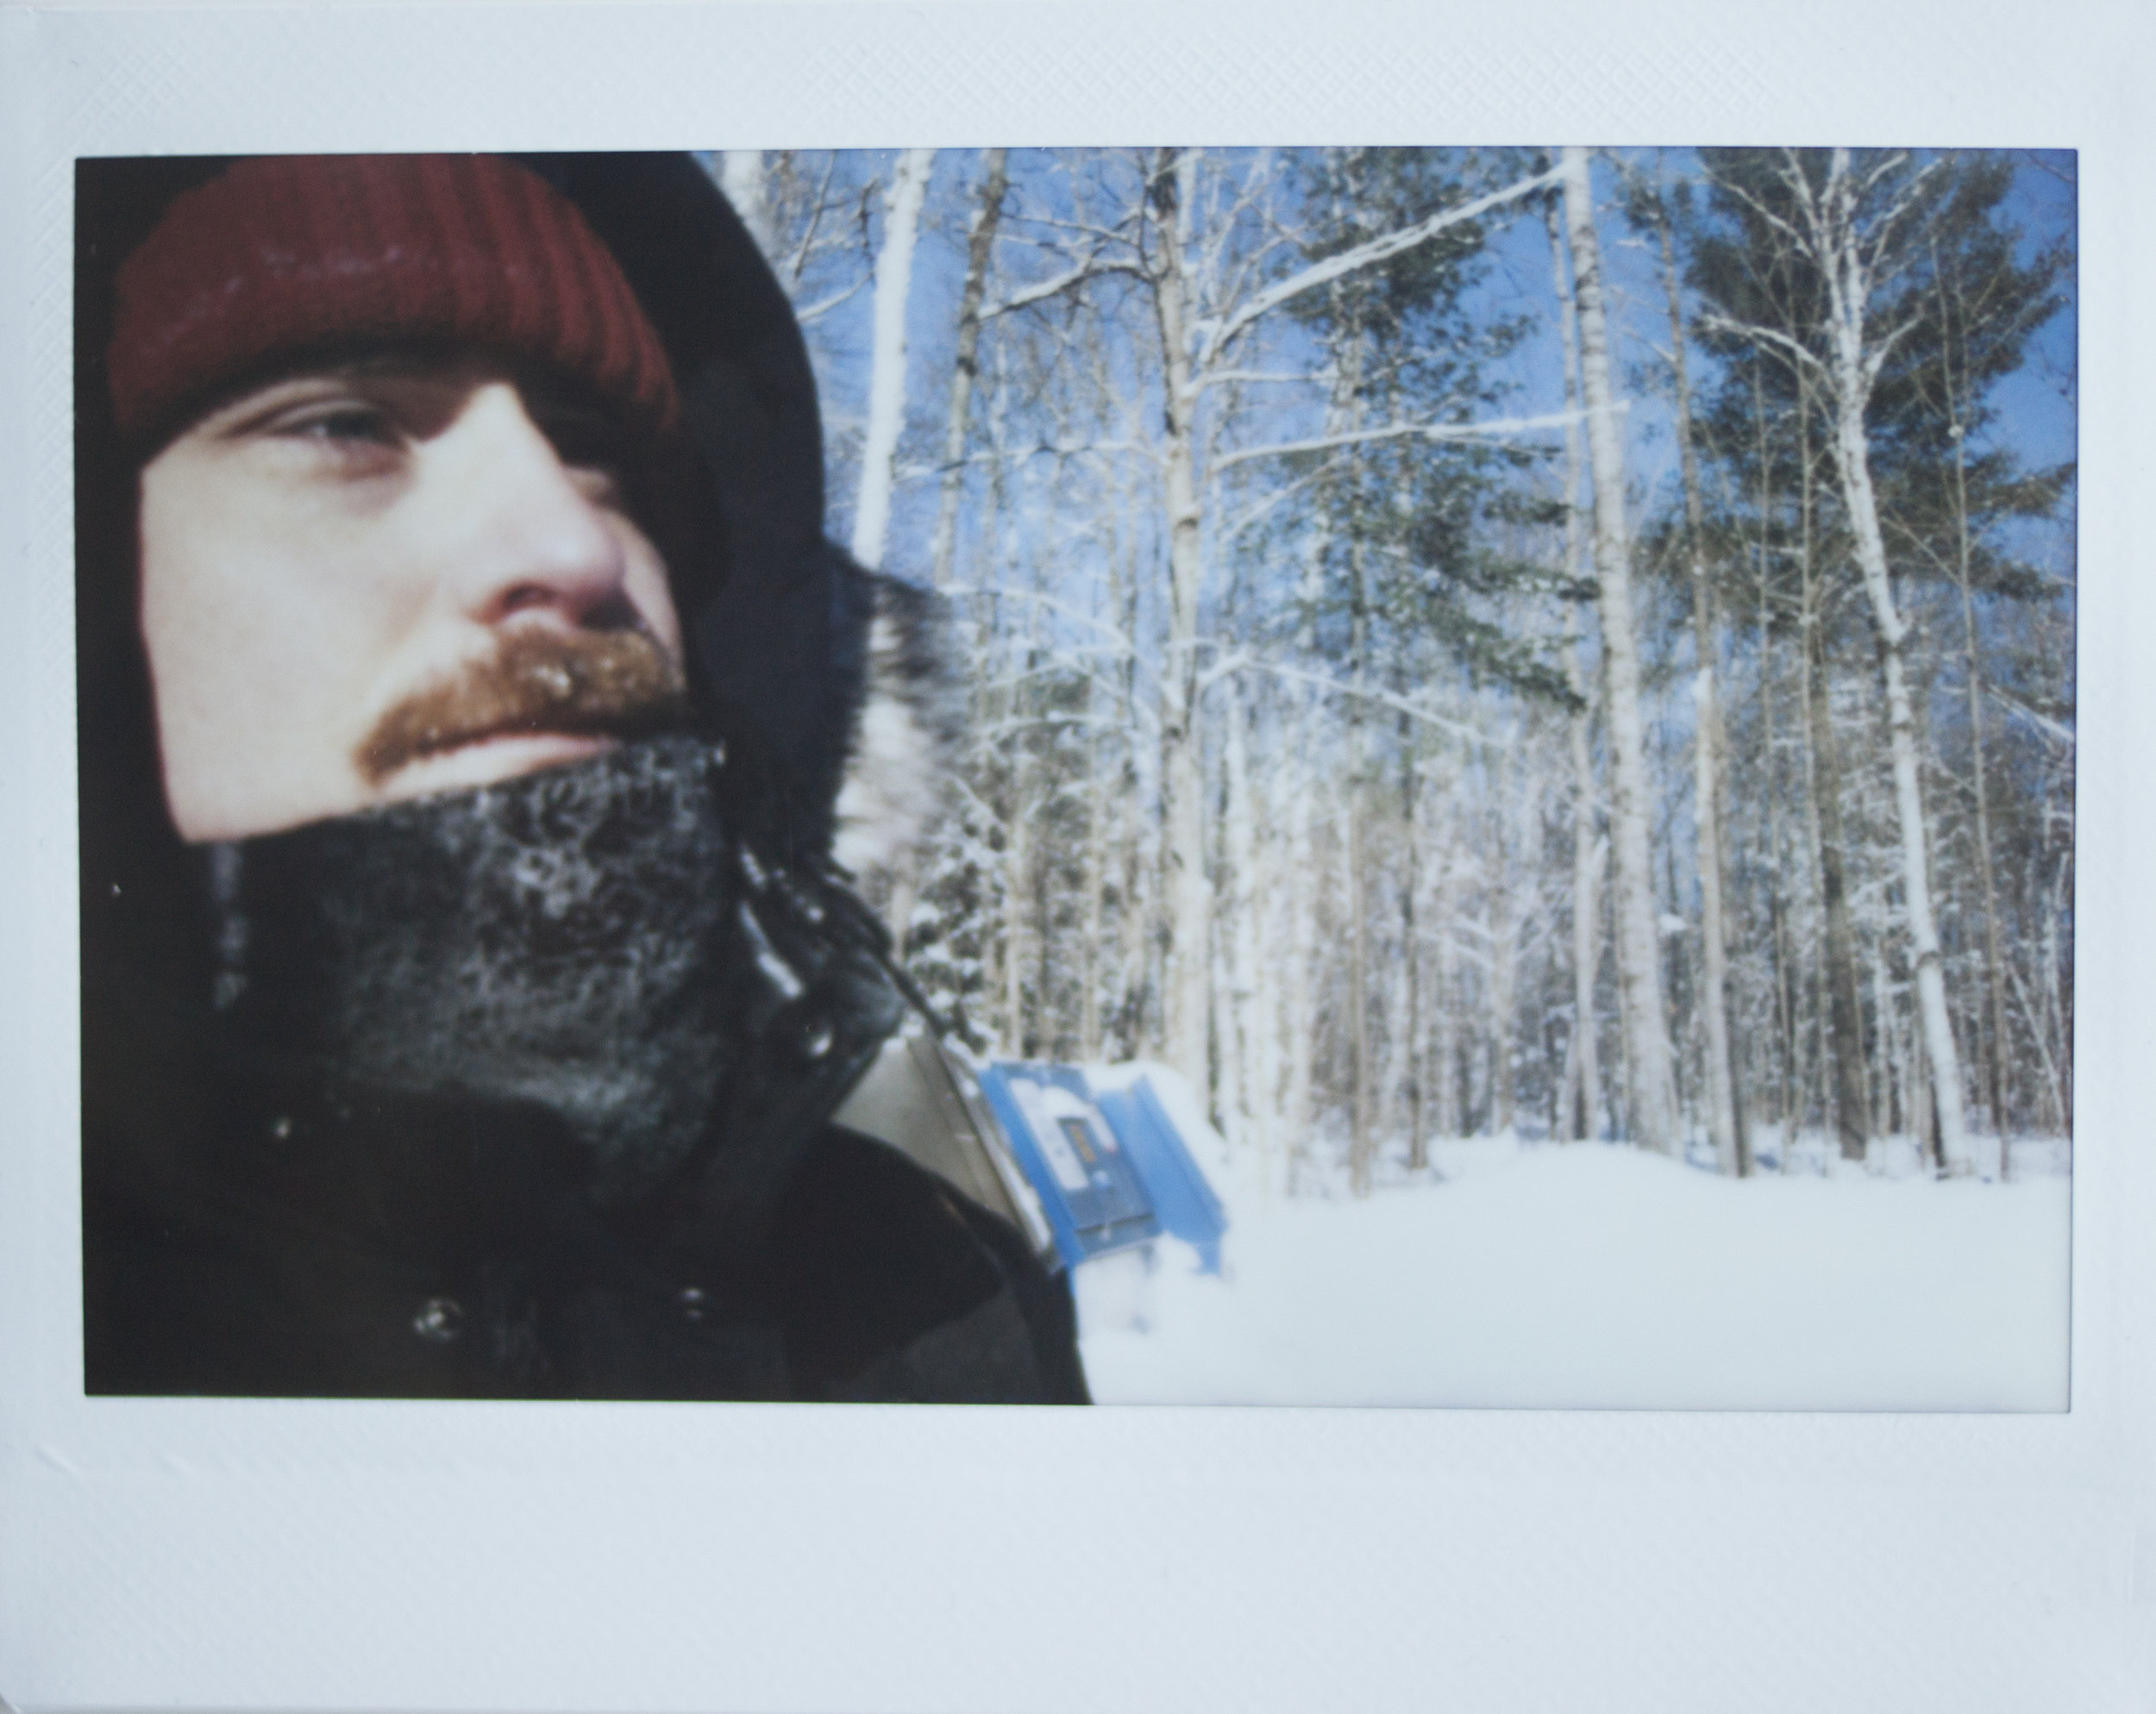 - We went ice skating on a natural trail in Algonquin National Park in -27°C, which was both incredibly cold and beautiful at the same time. If you try to cover your face with a scarf your breath condenses and freezes straight away so your scarf gets frosty. It was pretty funny seeing our friend's beard and my boyfriend's moustache with frost and little icicles in it! We also went tobogganing on our friend's brother's property, ate lots of snacks, played lots of board games by the fire and generally had a lovely time.